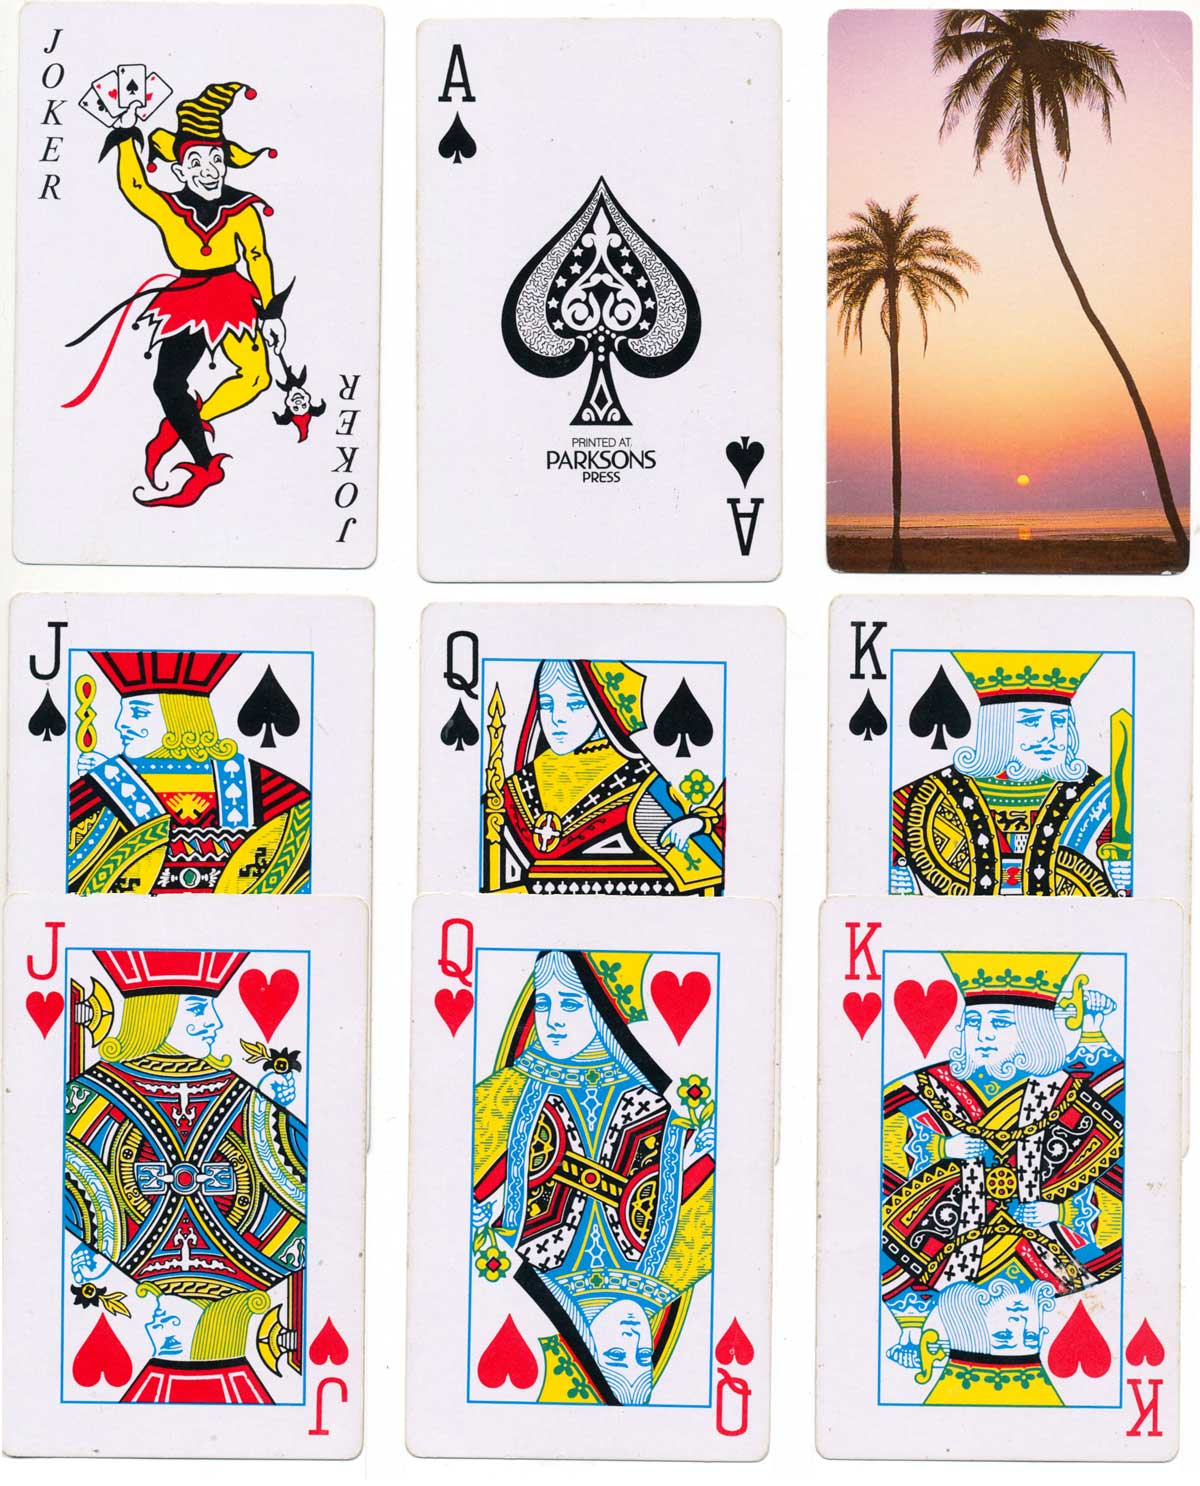 deck for Sunidhi Games and Sports, printed at the Parkinsons Press, 2001